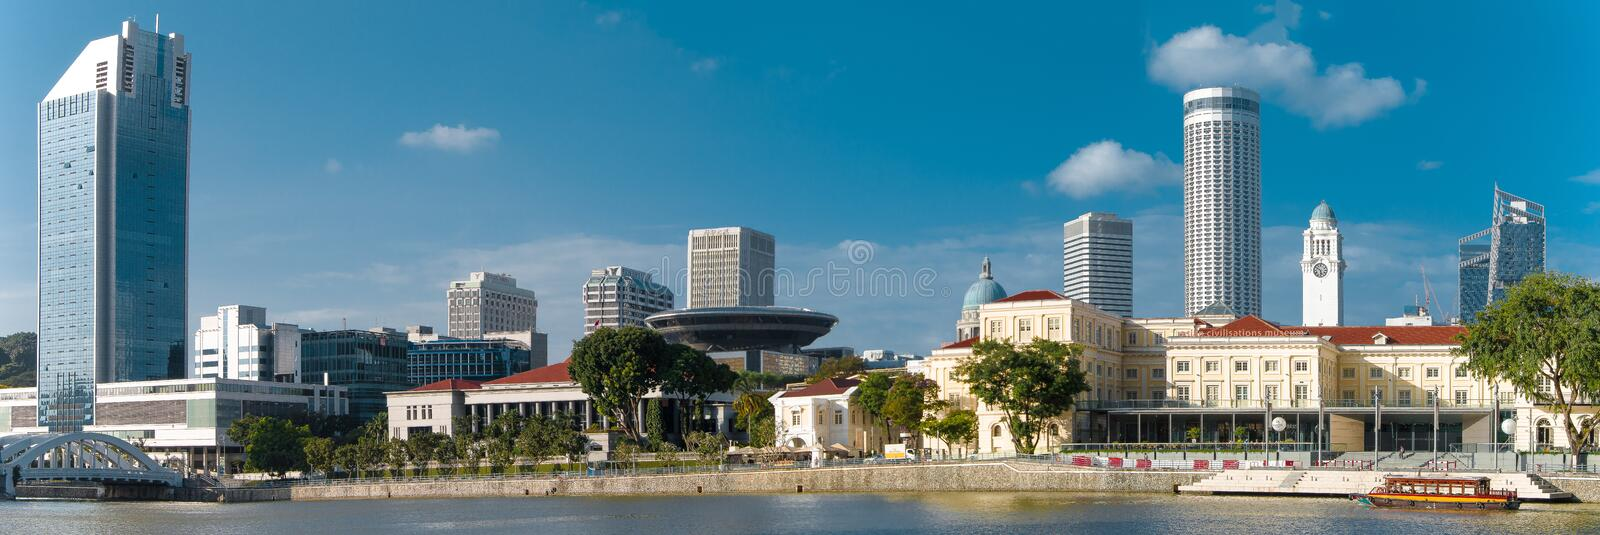 Panorama of the City Near The River royalty free stock photo